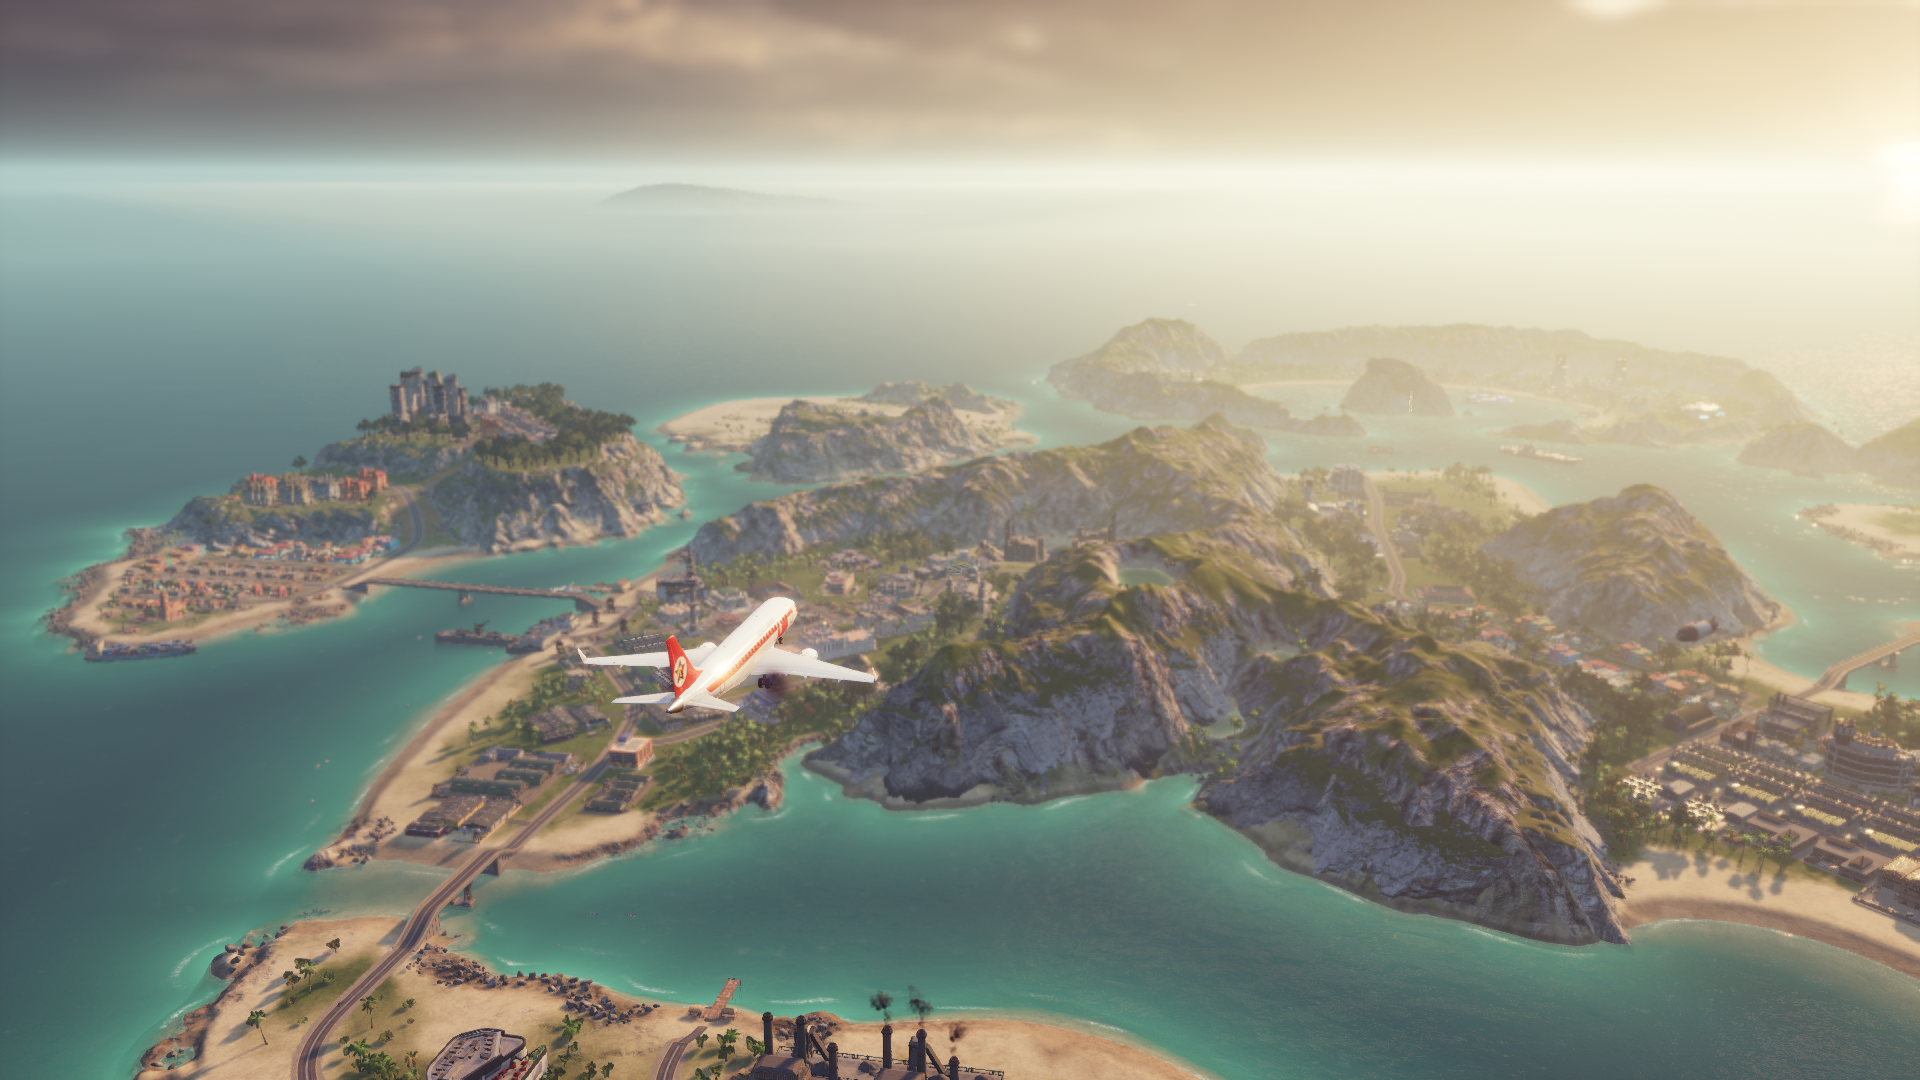 Tropico 6: A familiar getaway that's anything but a vacation